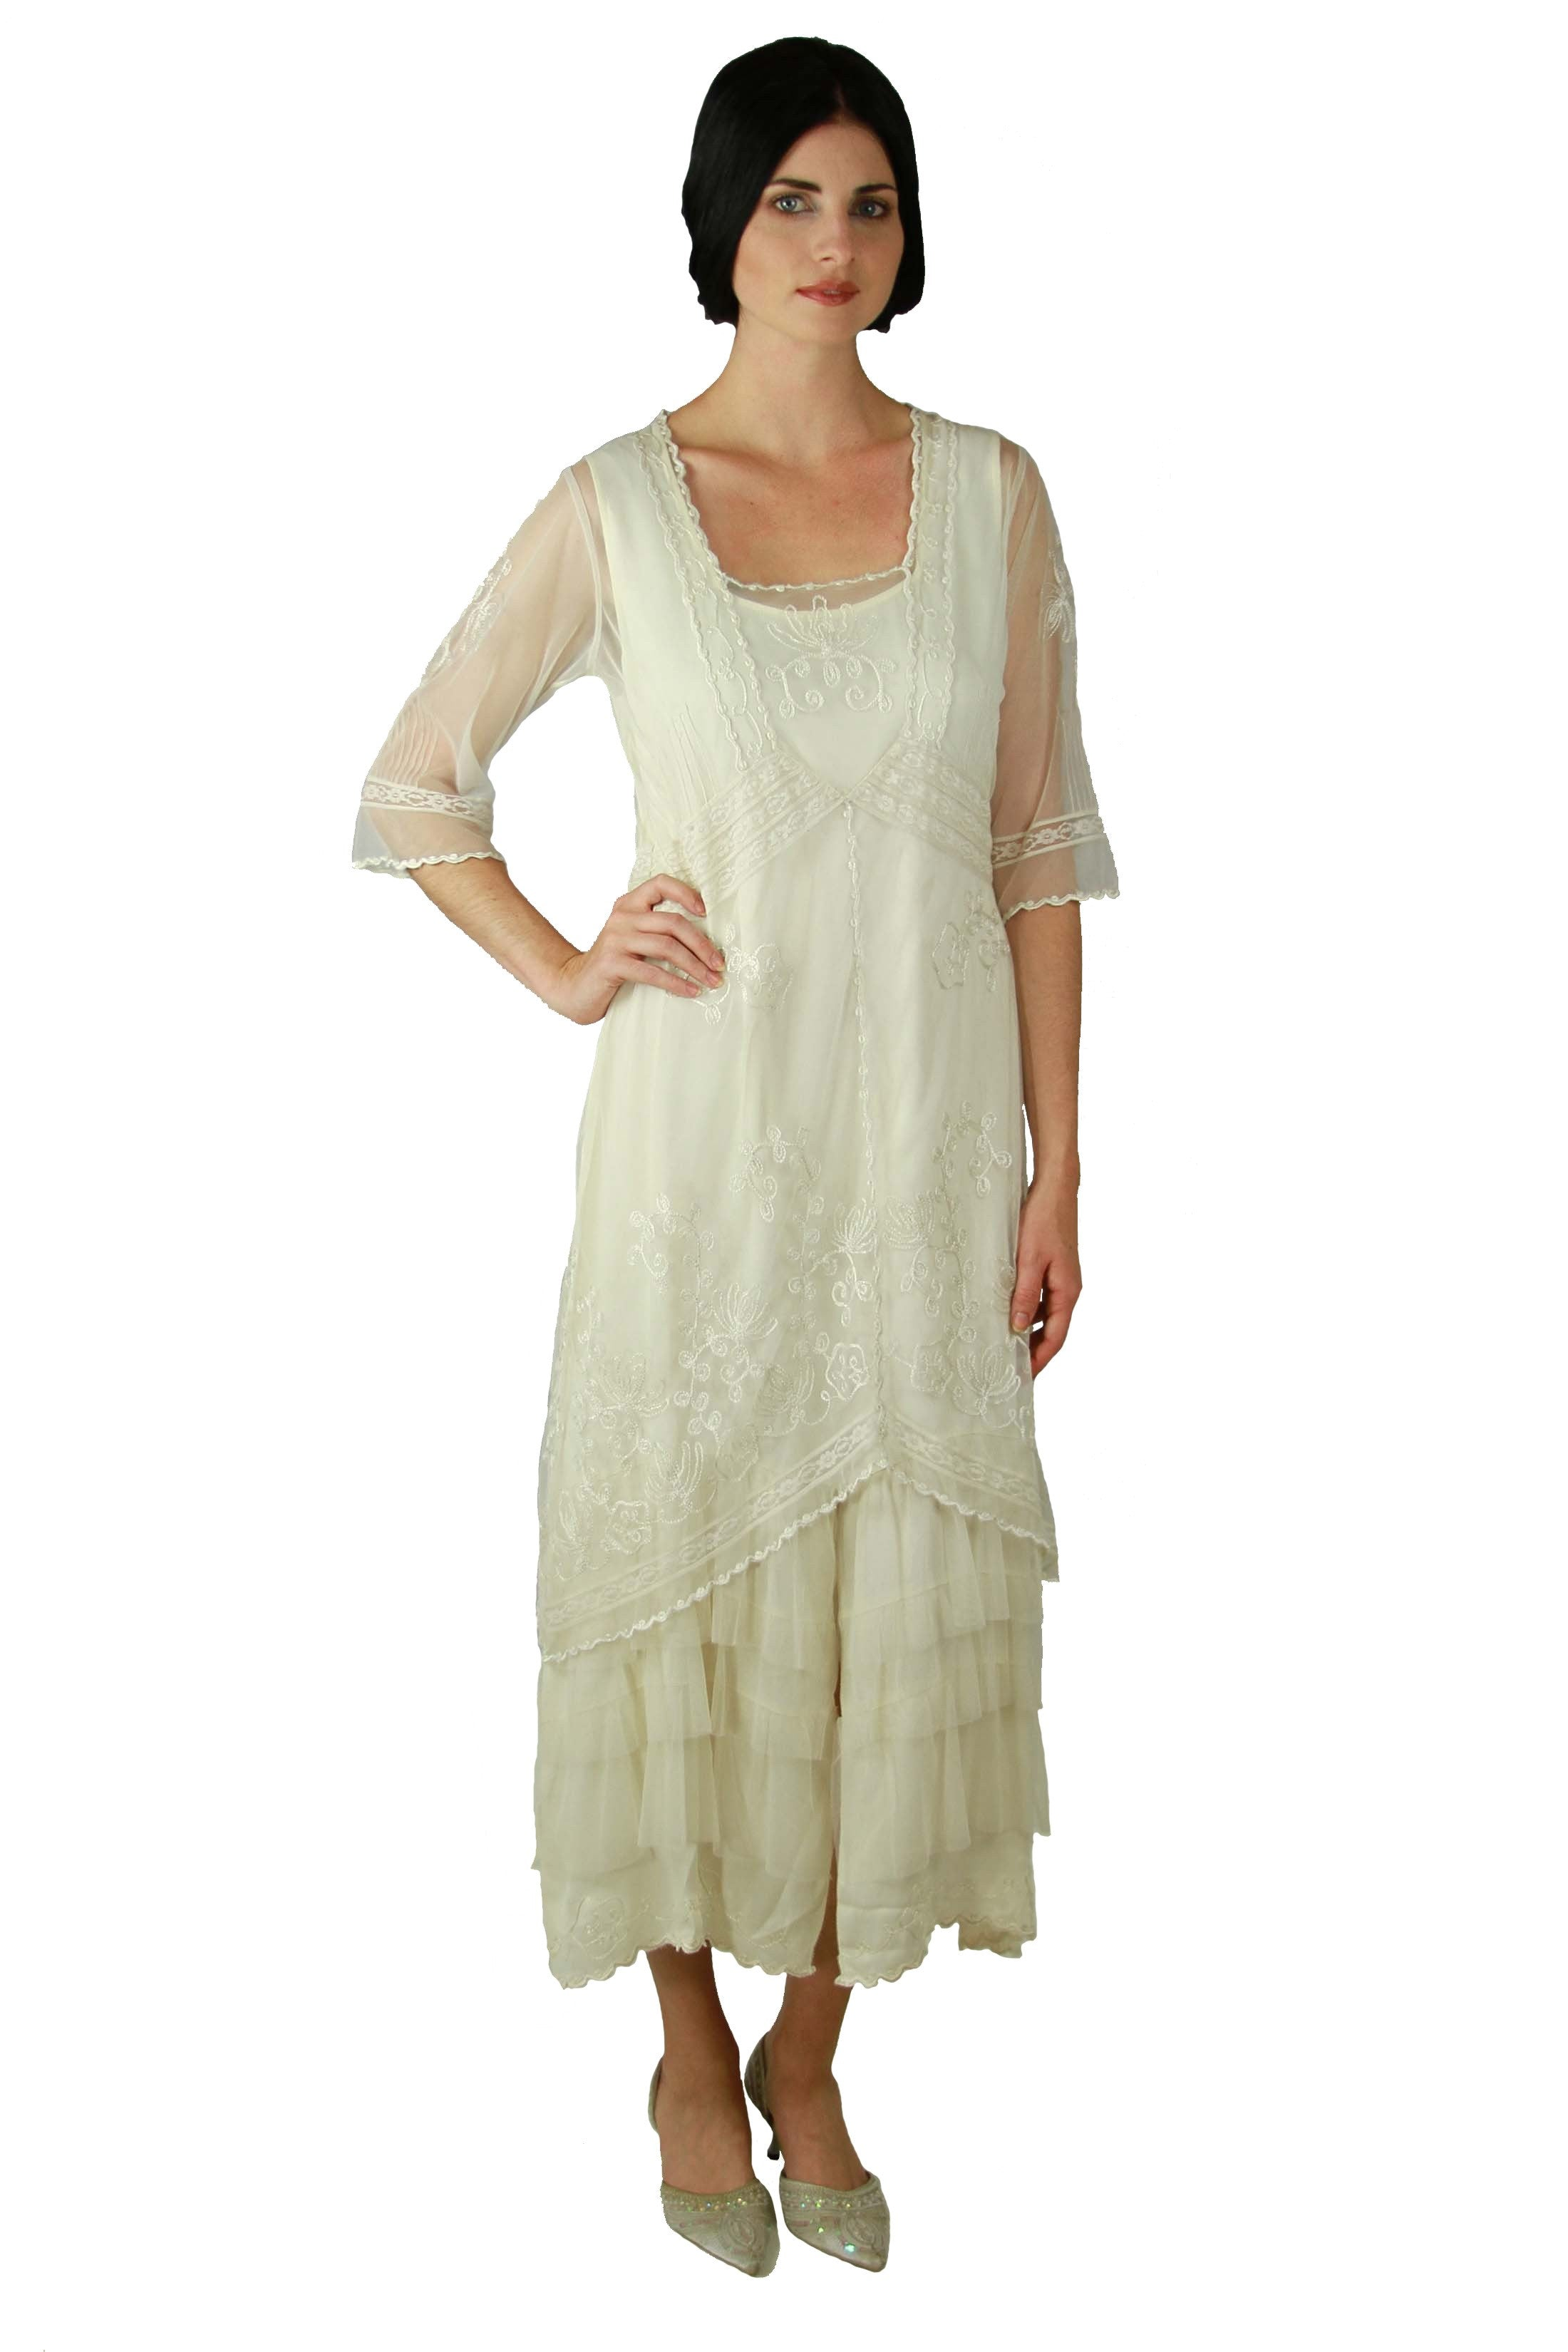 Great Gatsby Dress – Great Gatsby Dresses for Sale Titanic Tea Party Dress in Ivory by Nataya $228.00 AT vintagedancer.com